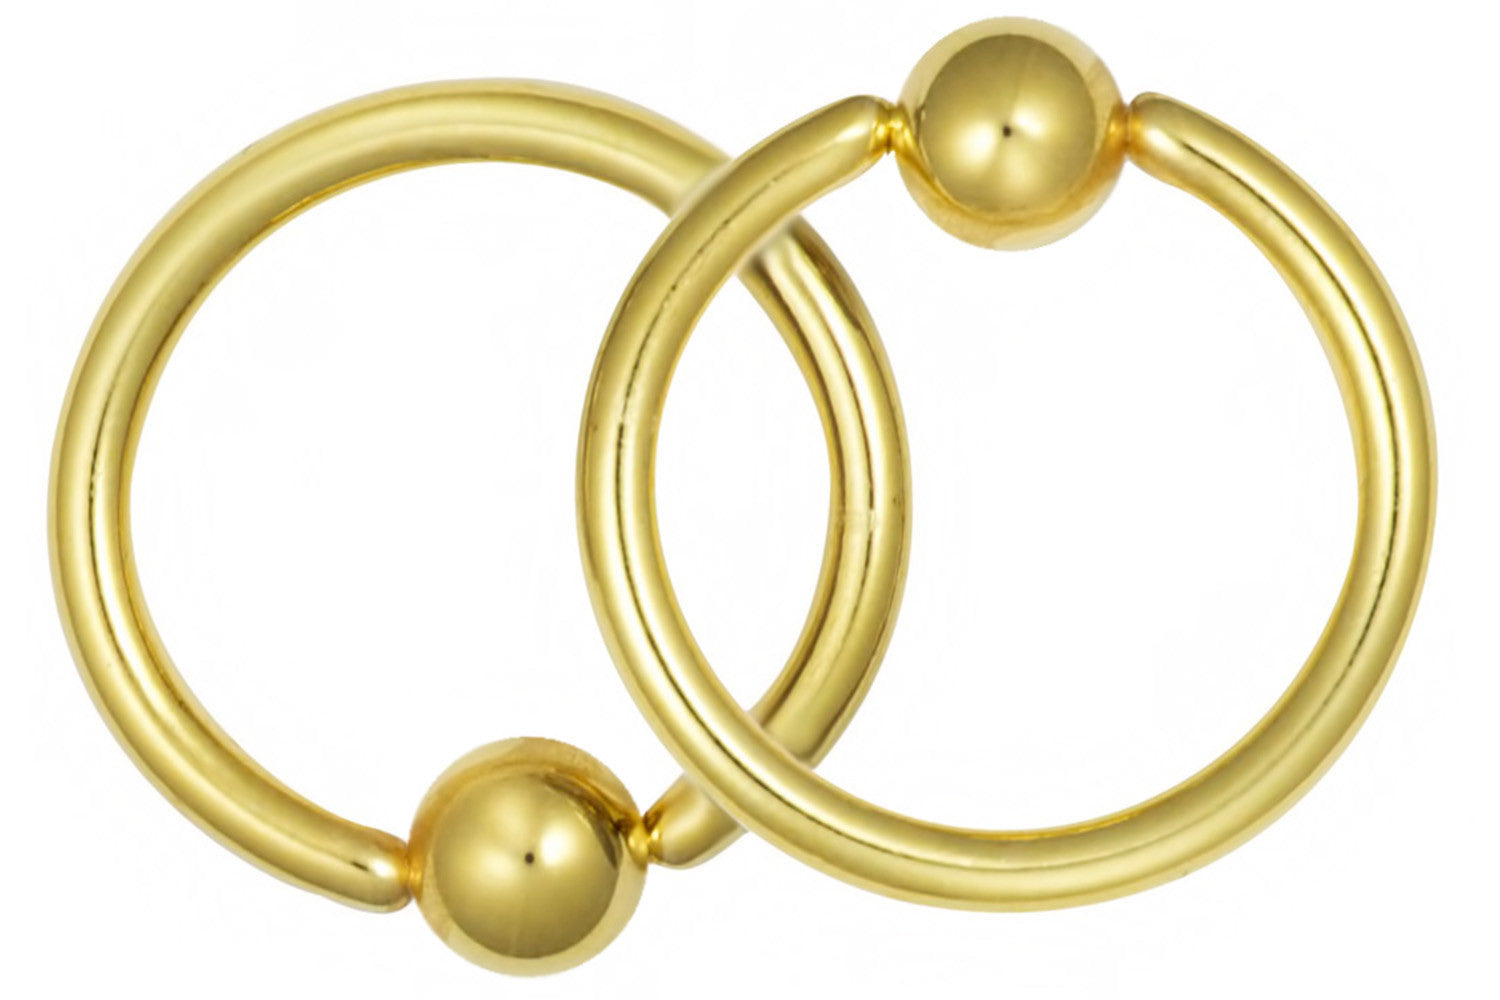 "These 16 gauge 7/16"" captive bead rings are made with surgical grade 316L Stainless Steel and yellow gold IP plating. IP (Ion Plating) is a safe and permanent fusion coating process used to enhance the durability, color and shine of body jewelry. These hoops can be worn in virtually any 16 gauge piercing and are most commonly used for the septum, lip and various piercings on the ear. These hoops come with 4 mm balls and they are hypoallergenic and nickel free."